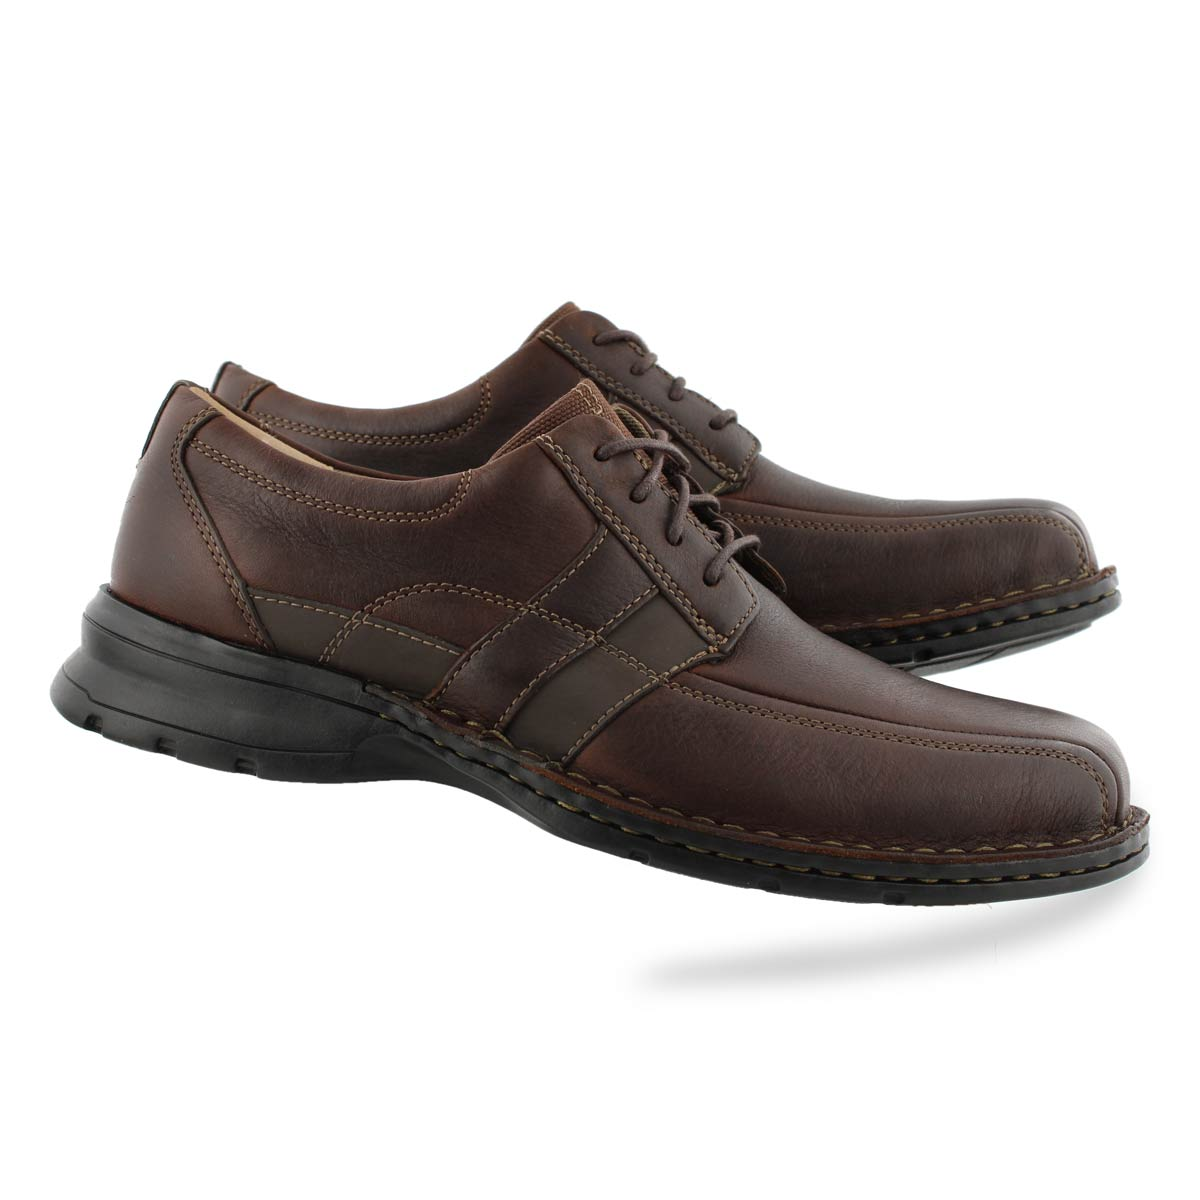 Men's ESPACE brown oily leather comfort oxfords